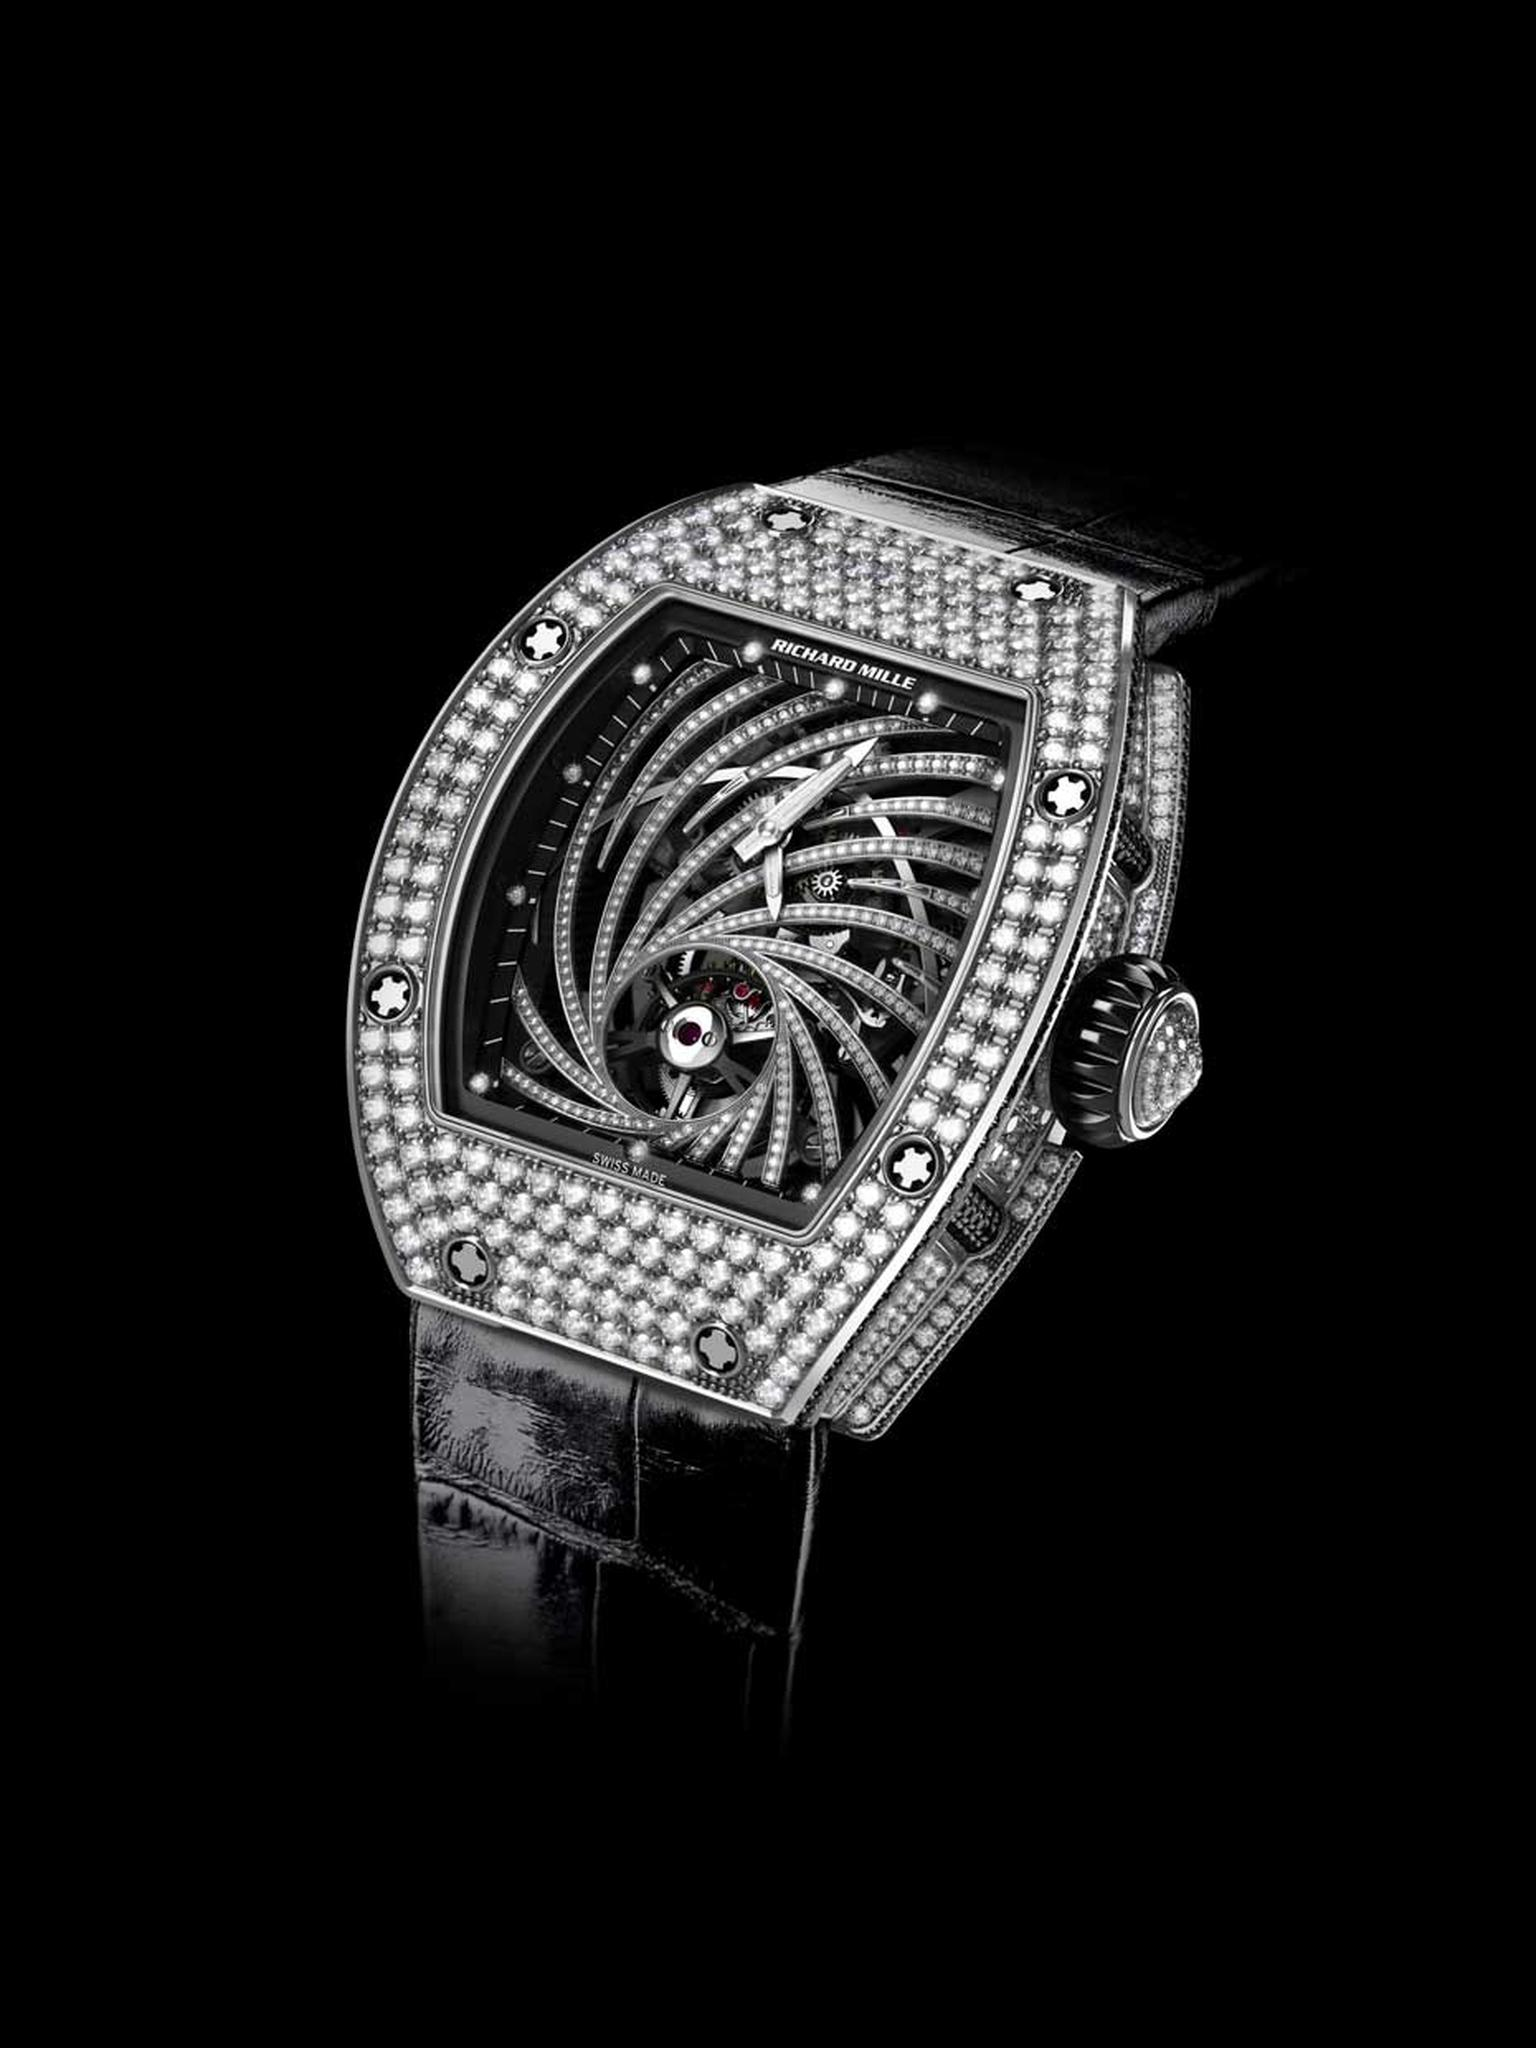 The new Richard Mille RM 51-02 Tourbillon Diamond Twister features a diamond-embedded spiral that emanates from the tourbillon escapement at 6 o'clock.